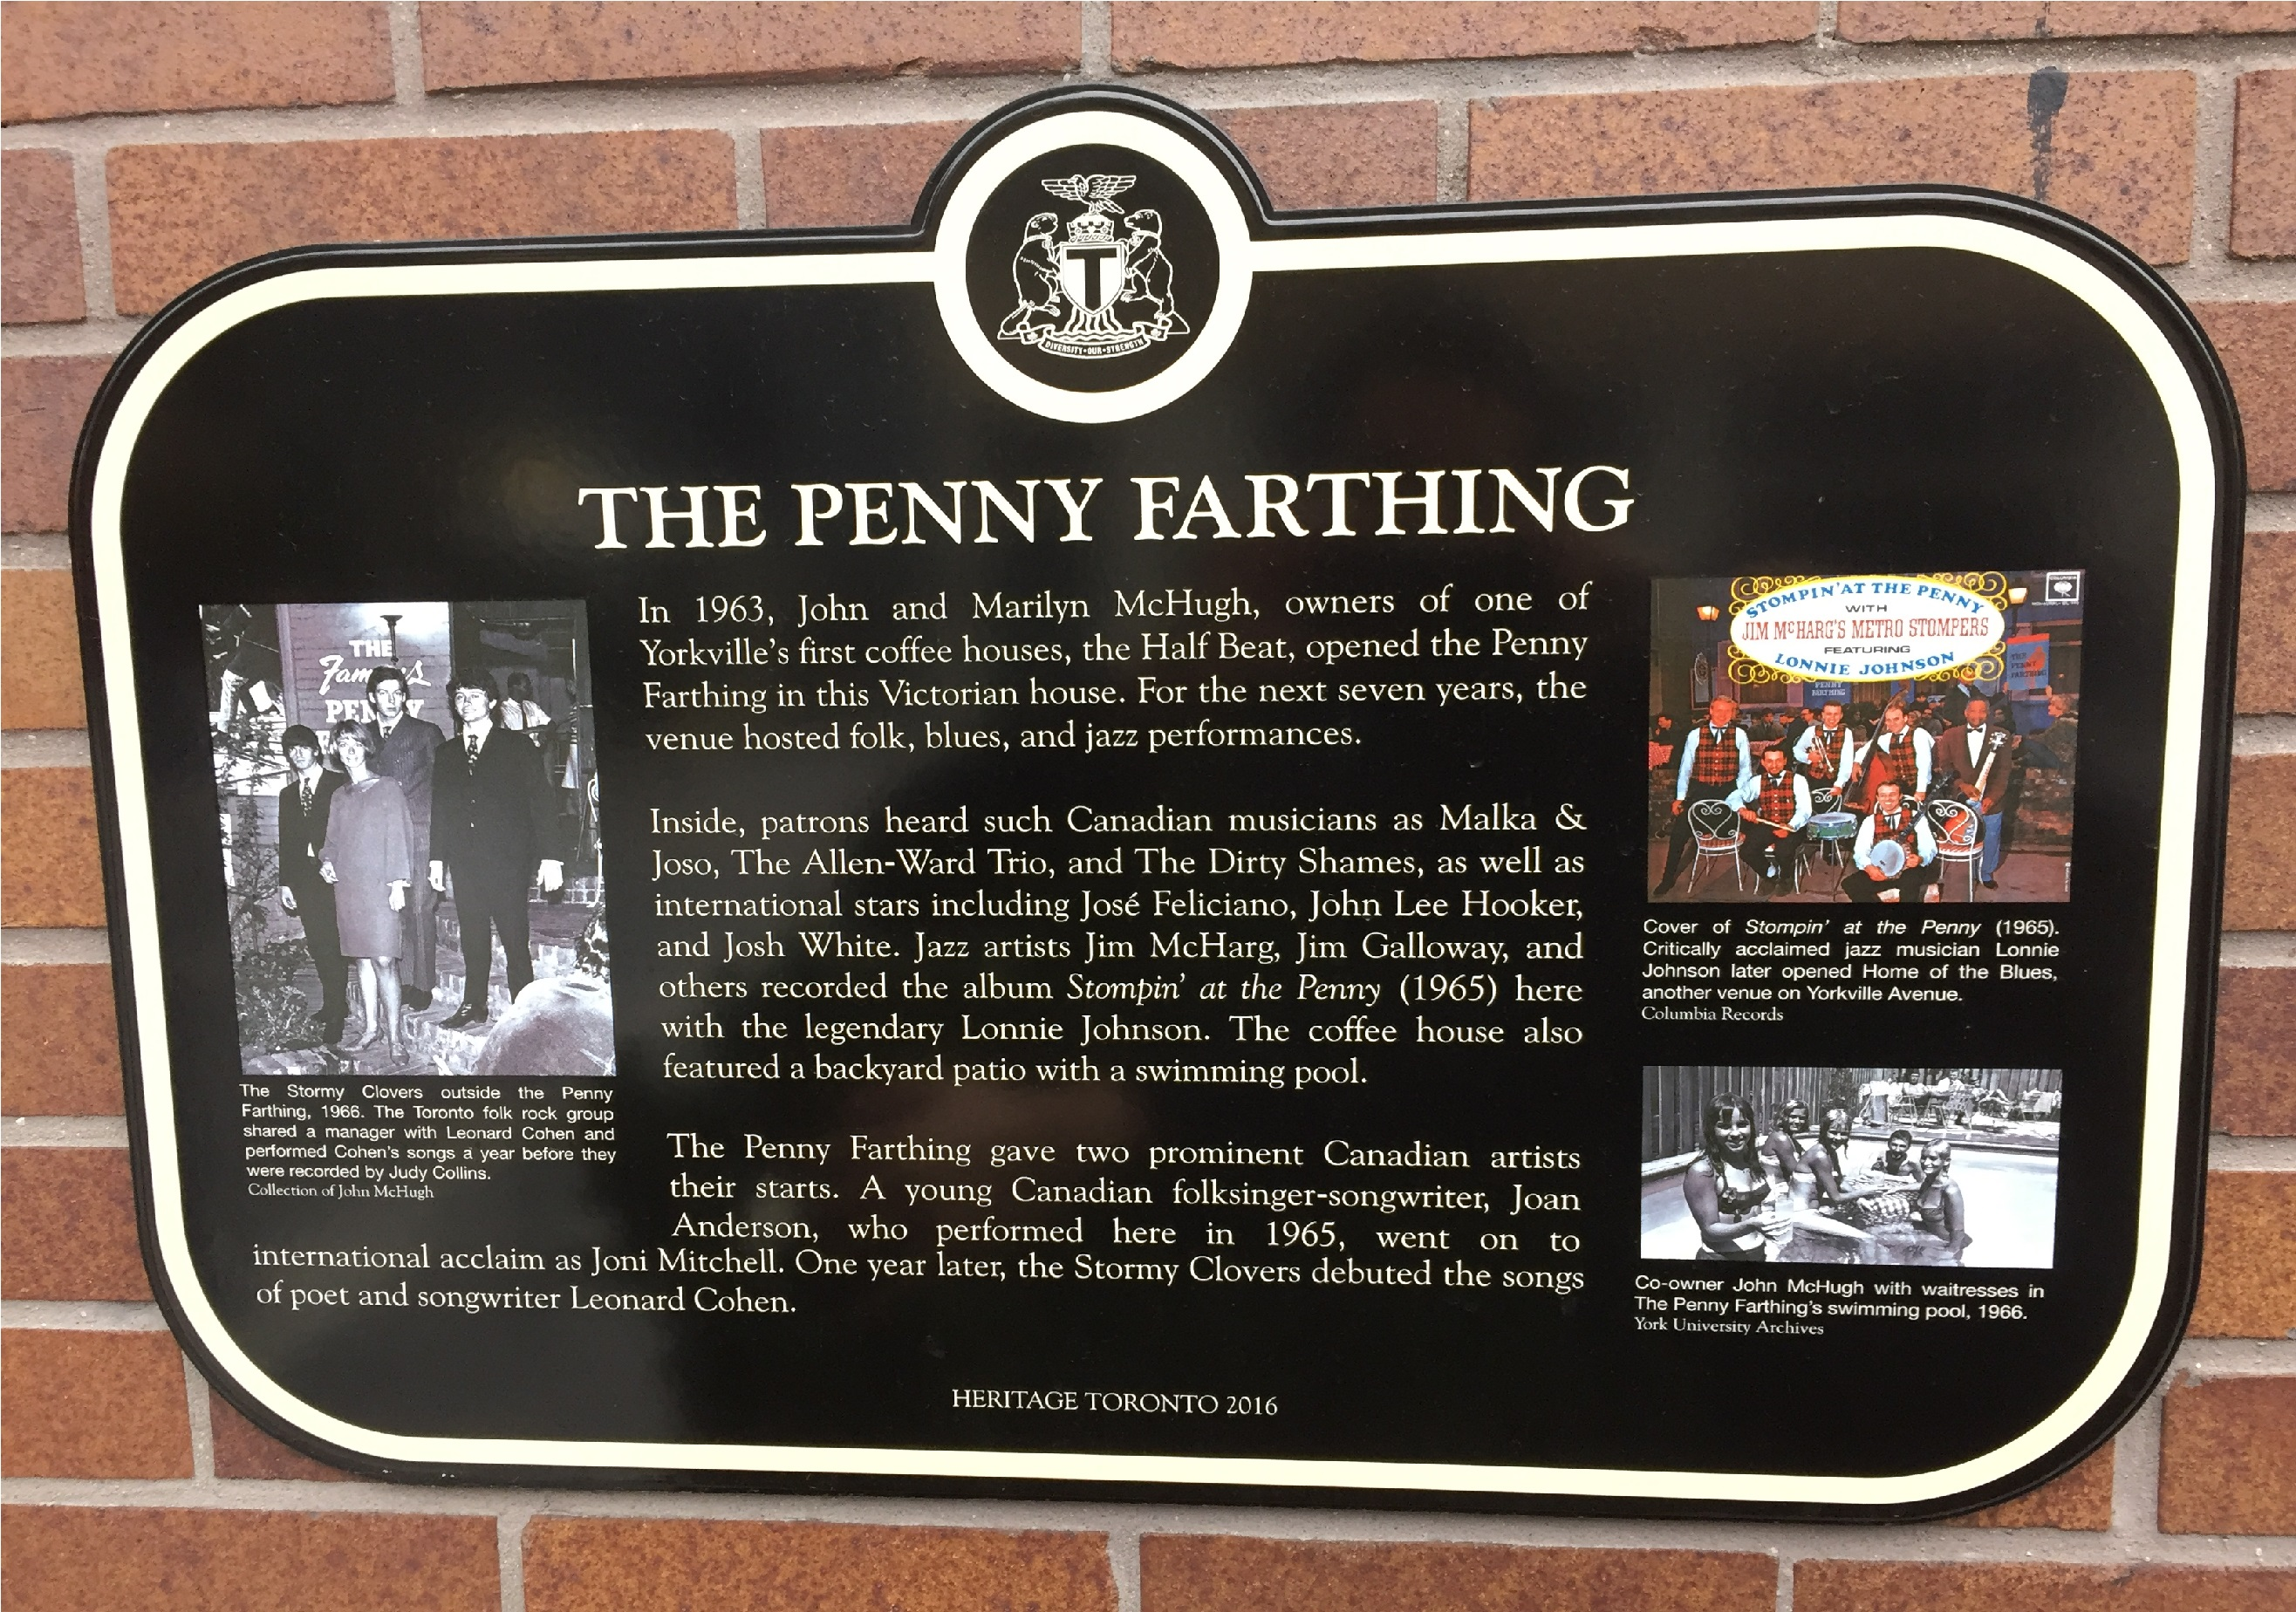 The Penny Farthing Heritage Toronto Plaque